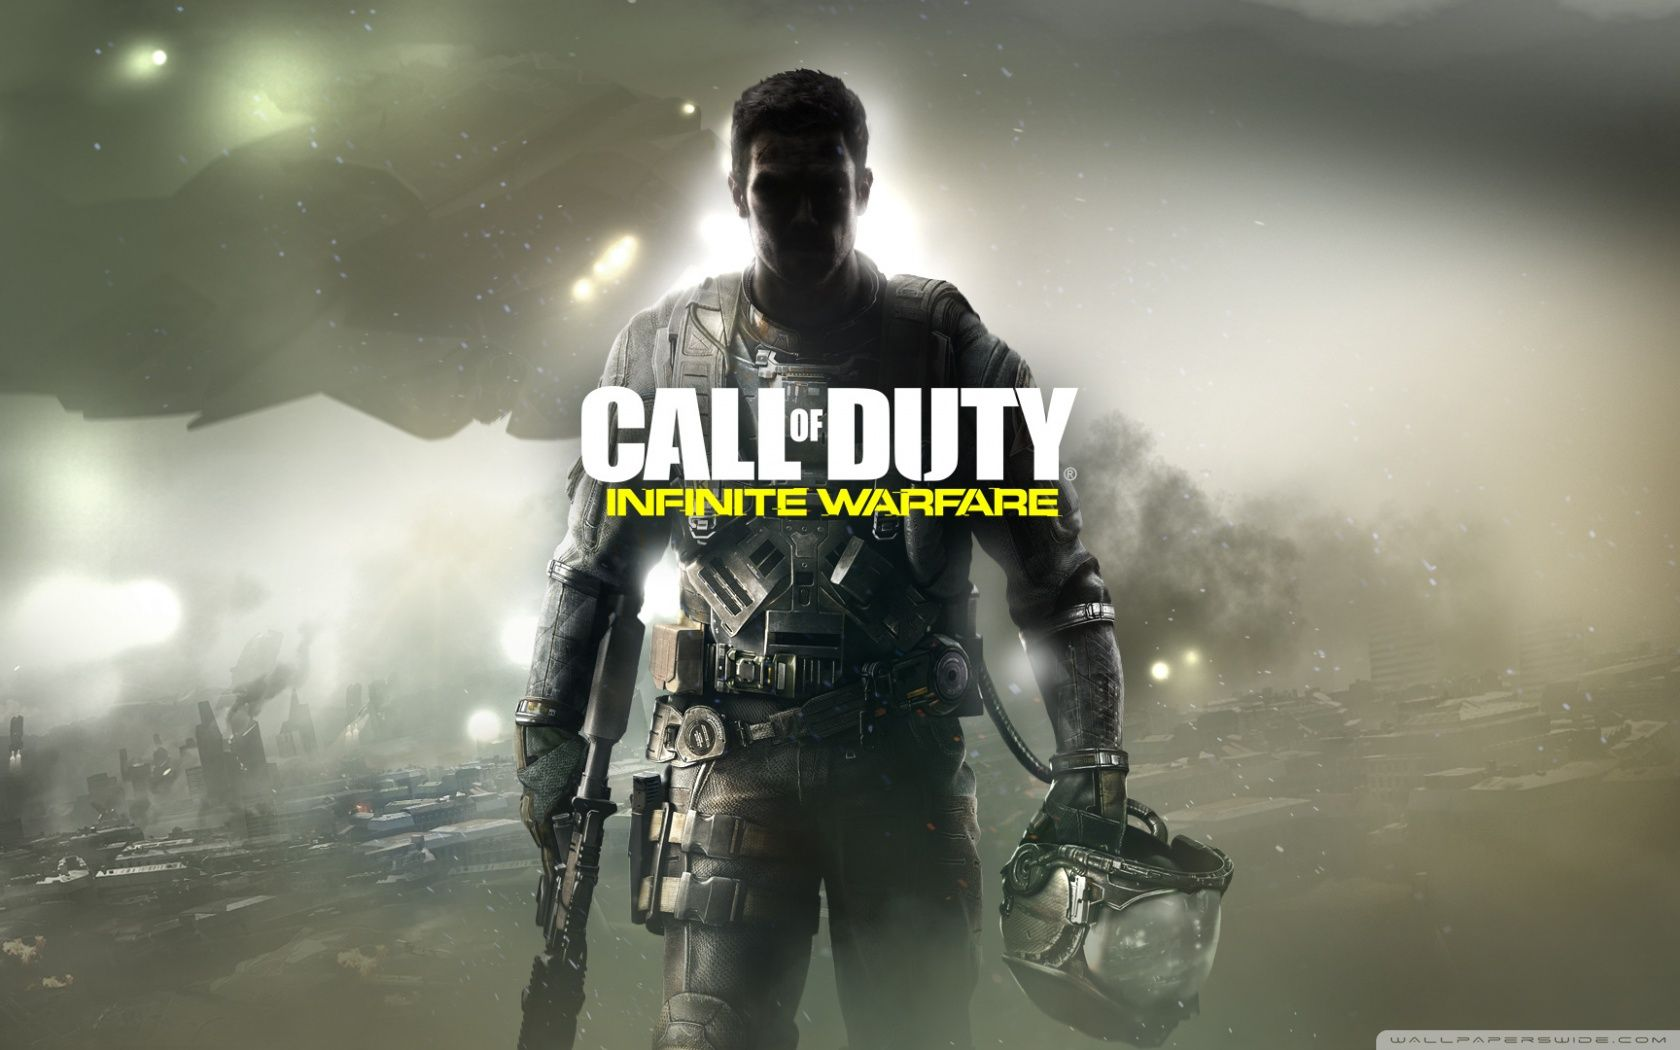 b6fb5a639fae244f7274a97c94eb36c6 - How To Get Call Of Duty Infinite Warfare For Free